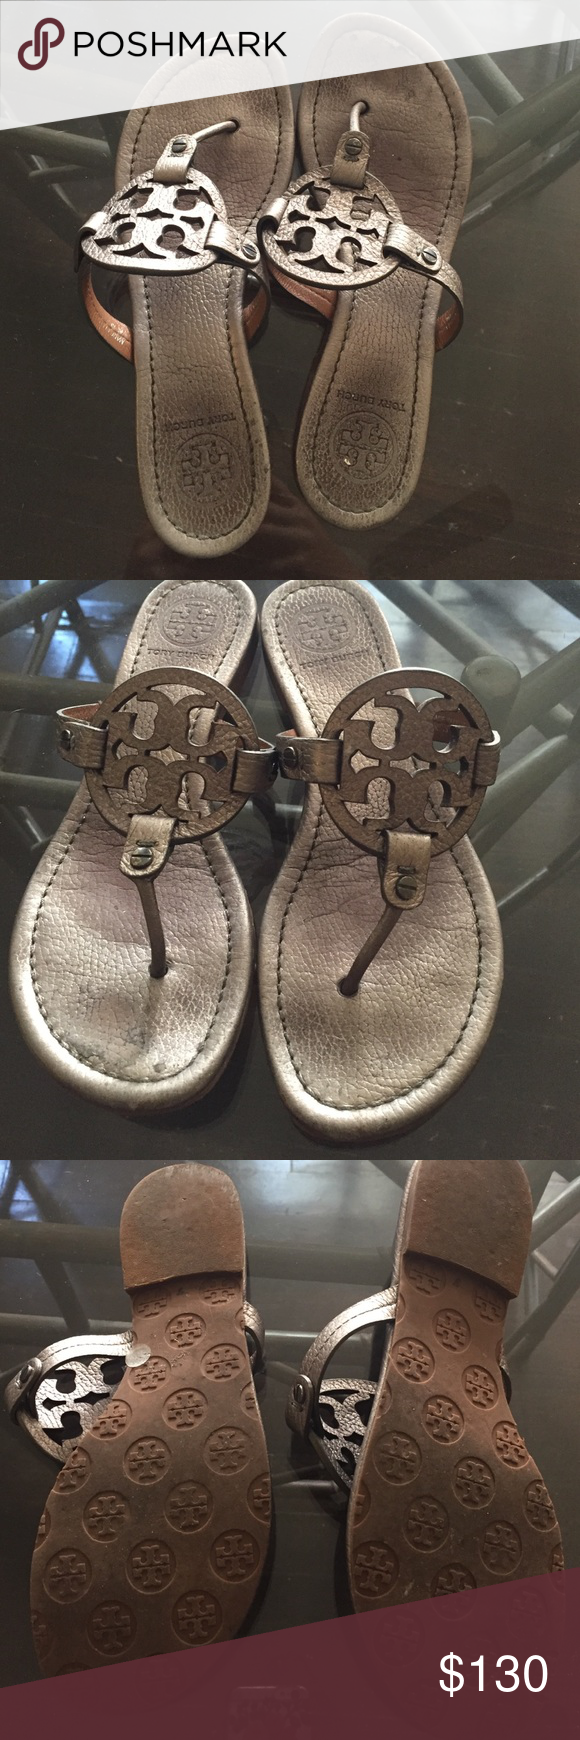 Gunmetal Tory burch Miller sandals Silver/grey Miller Tory burch. In good condition, a little wear on the soles but unnoticeable when wearing. Tory Burch Shoes Sandals